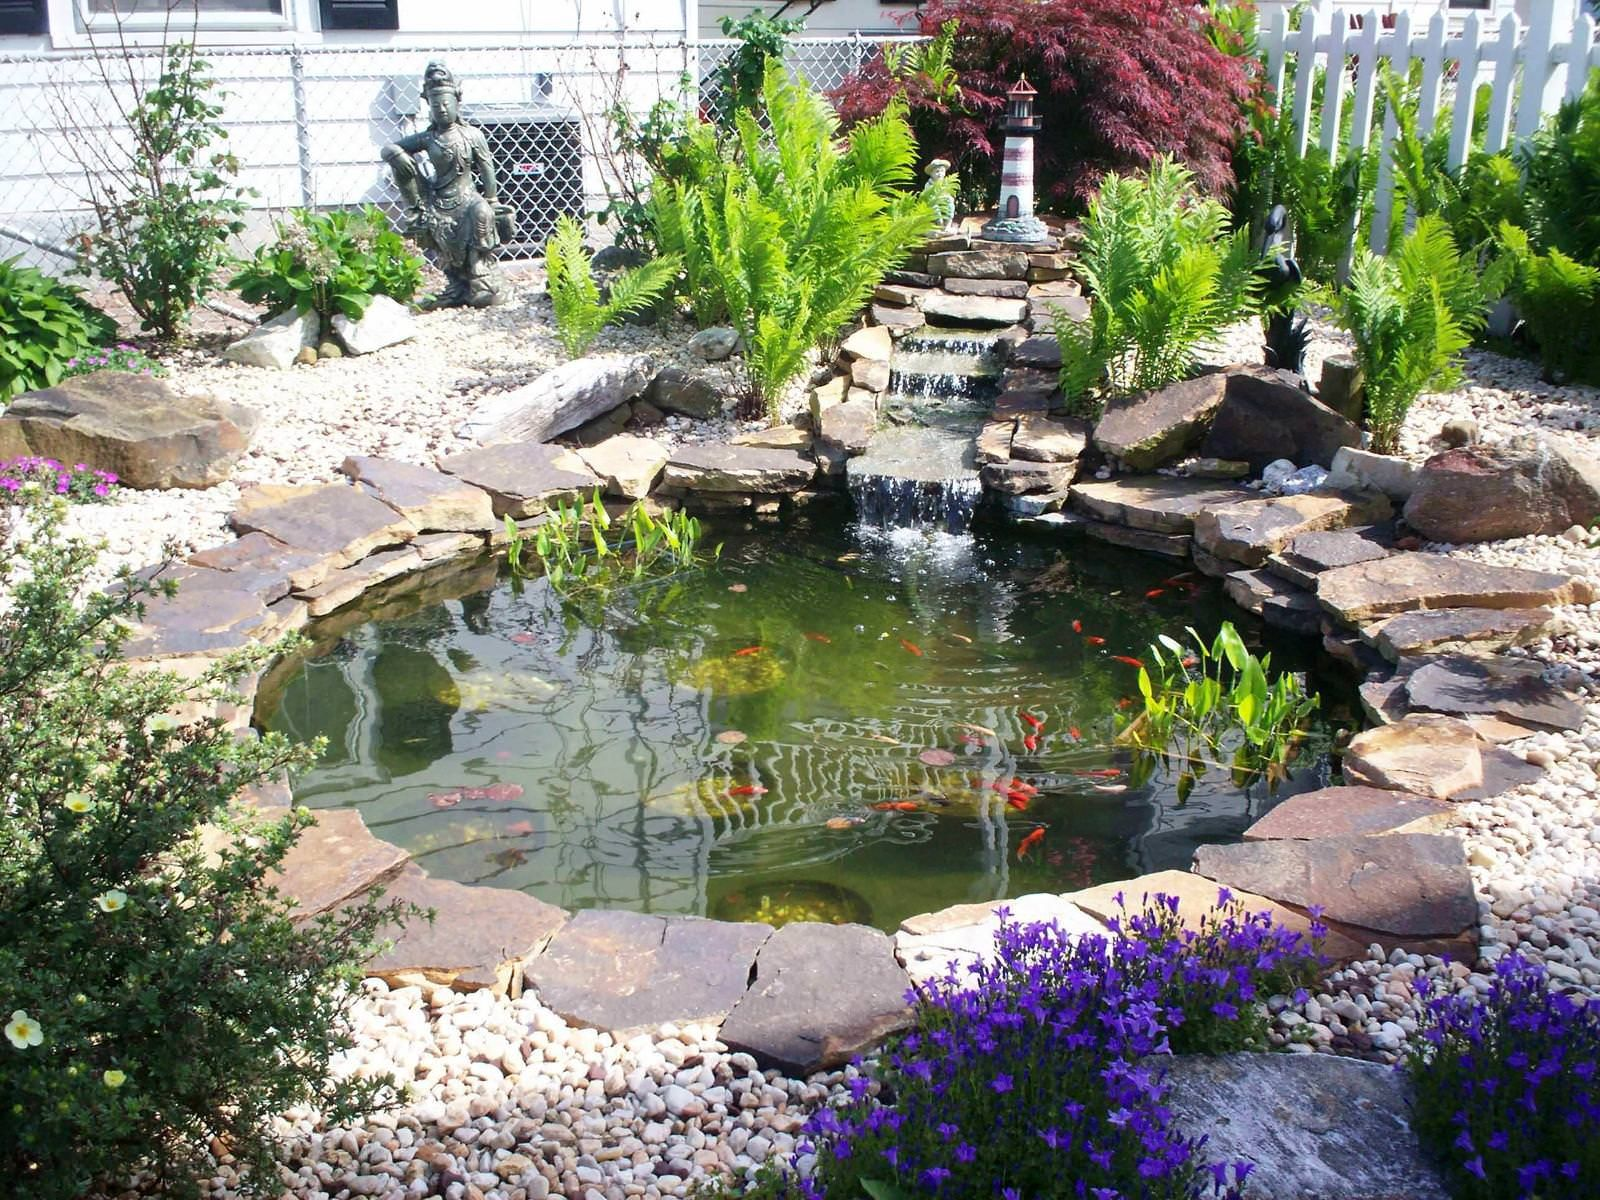 Small garden or backyard aquarium ideas practic ideas for Garden pond design plans